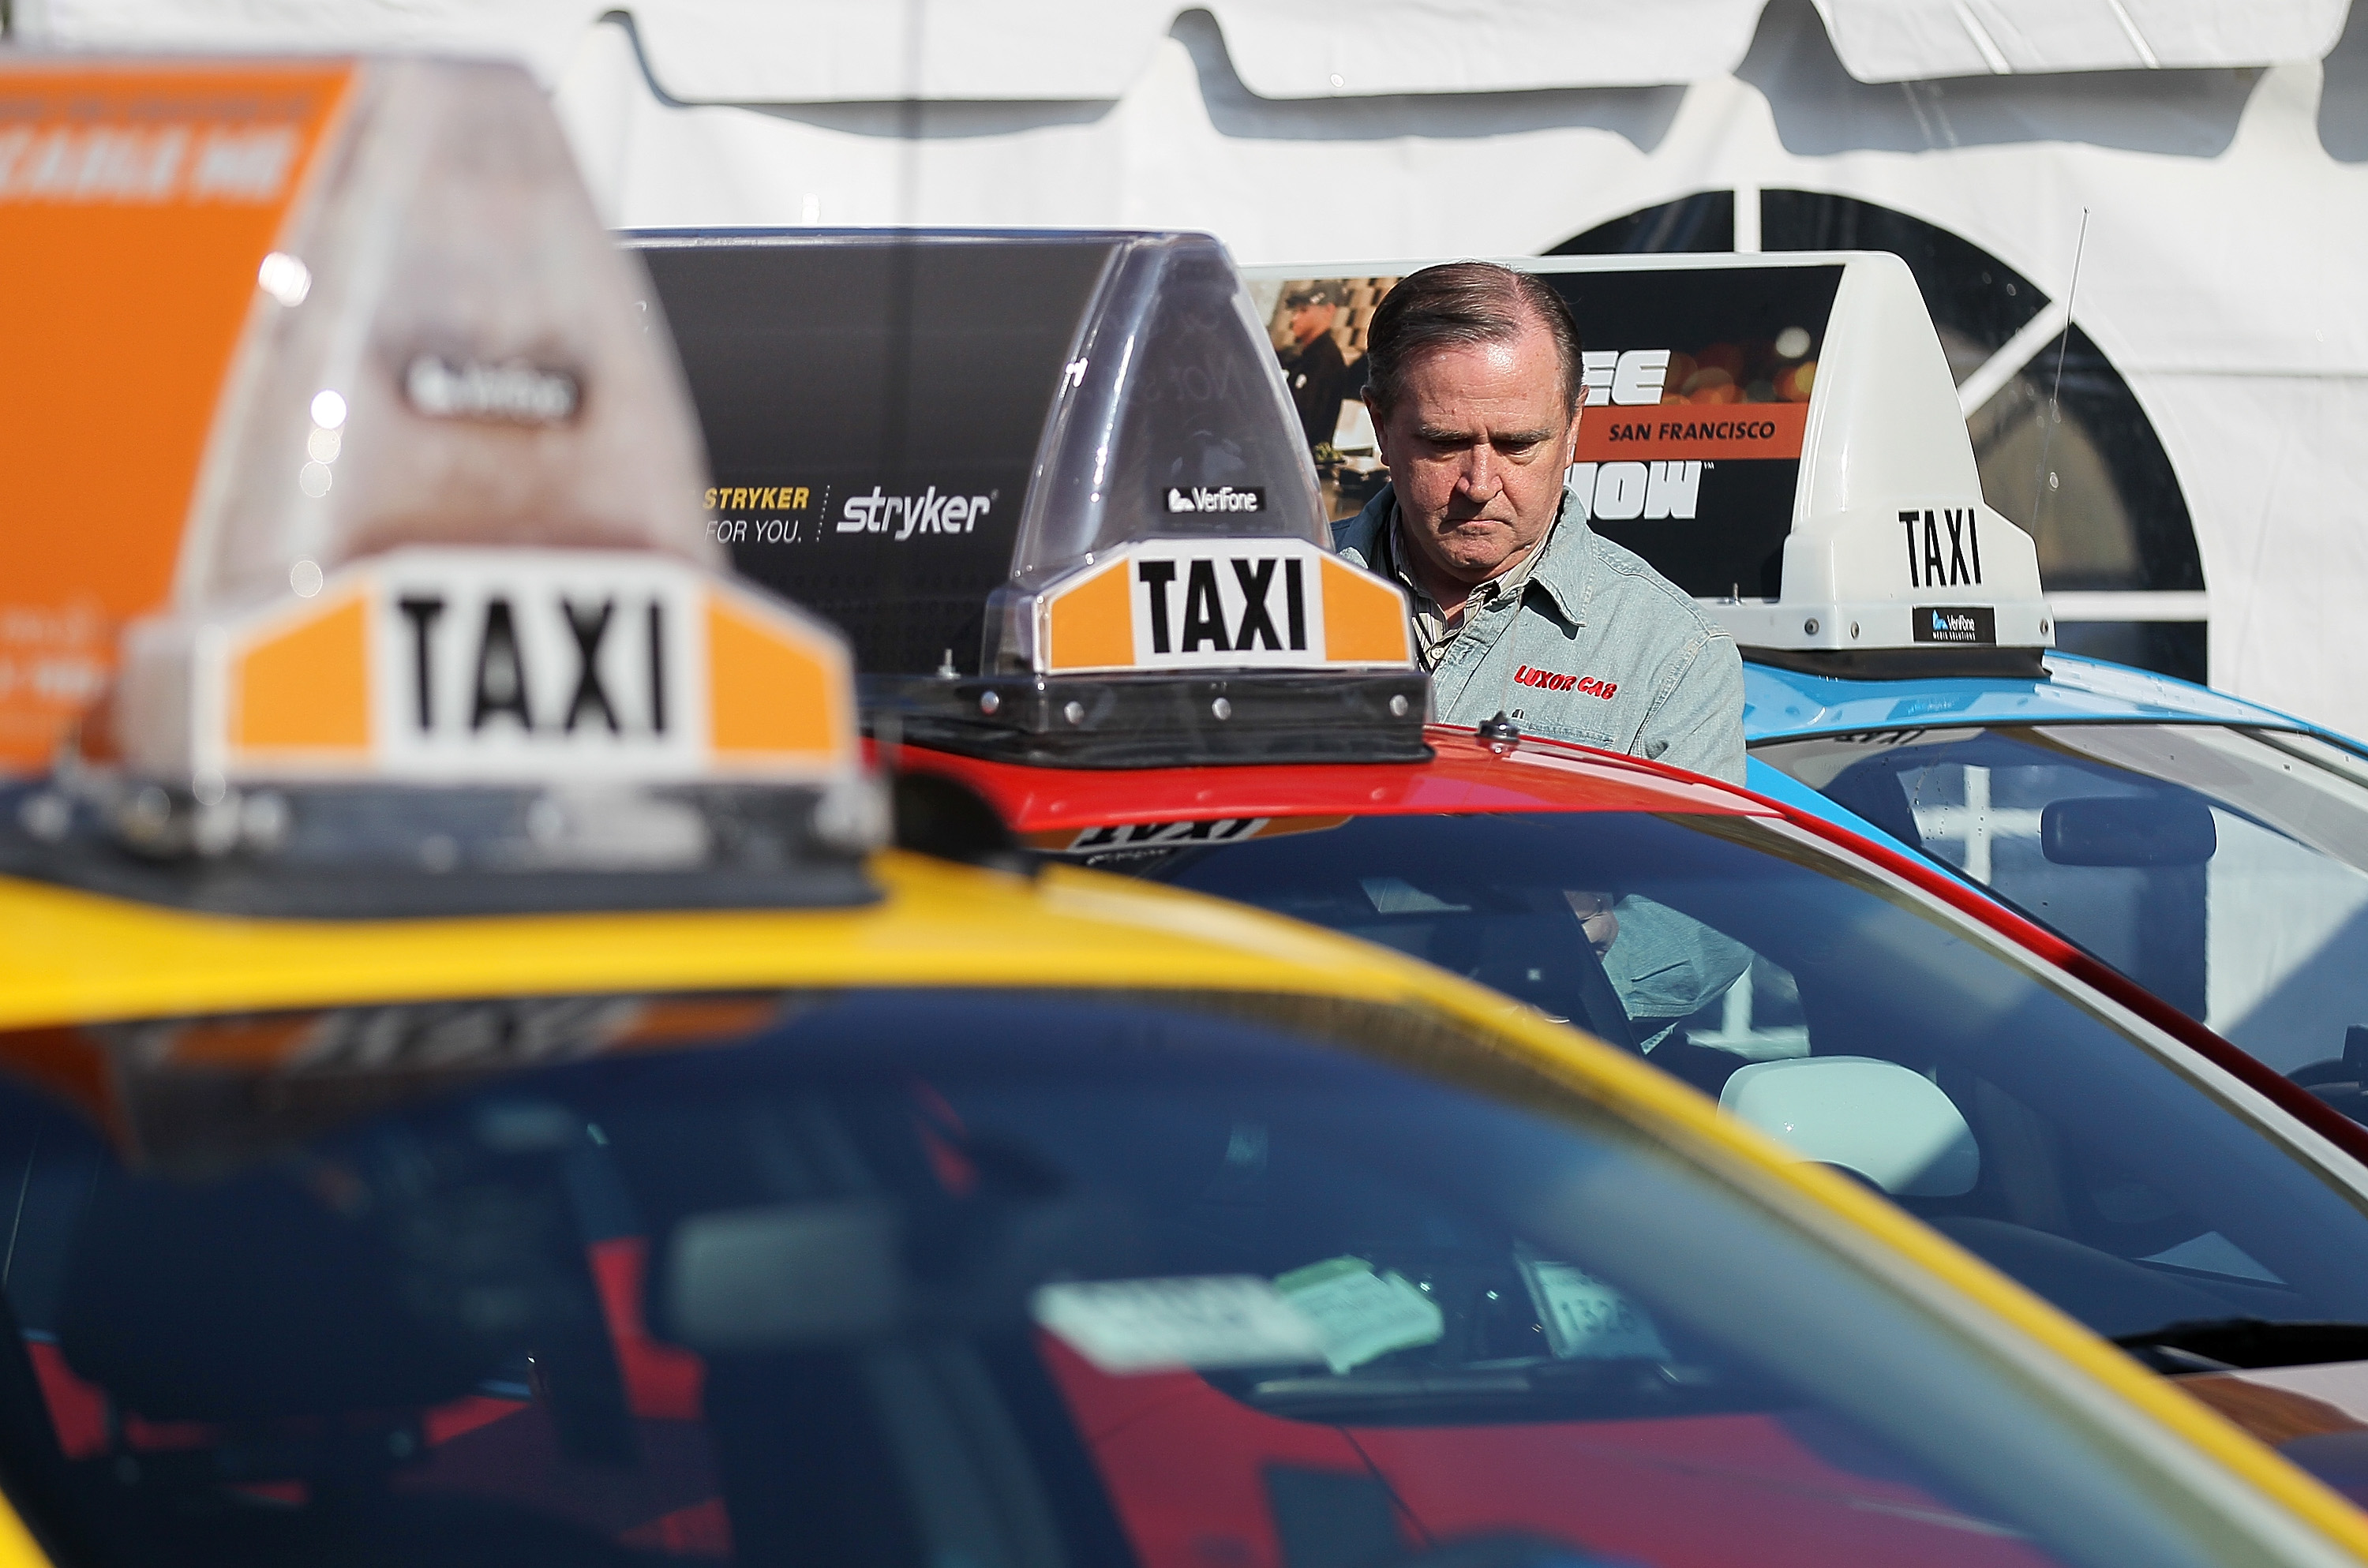 SF let Uber and Lyft kill taxi cabs, and stuck credit union